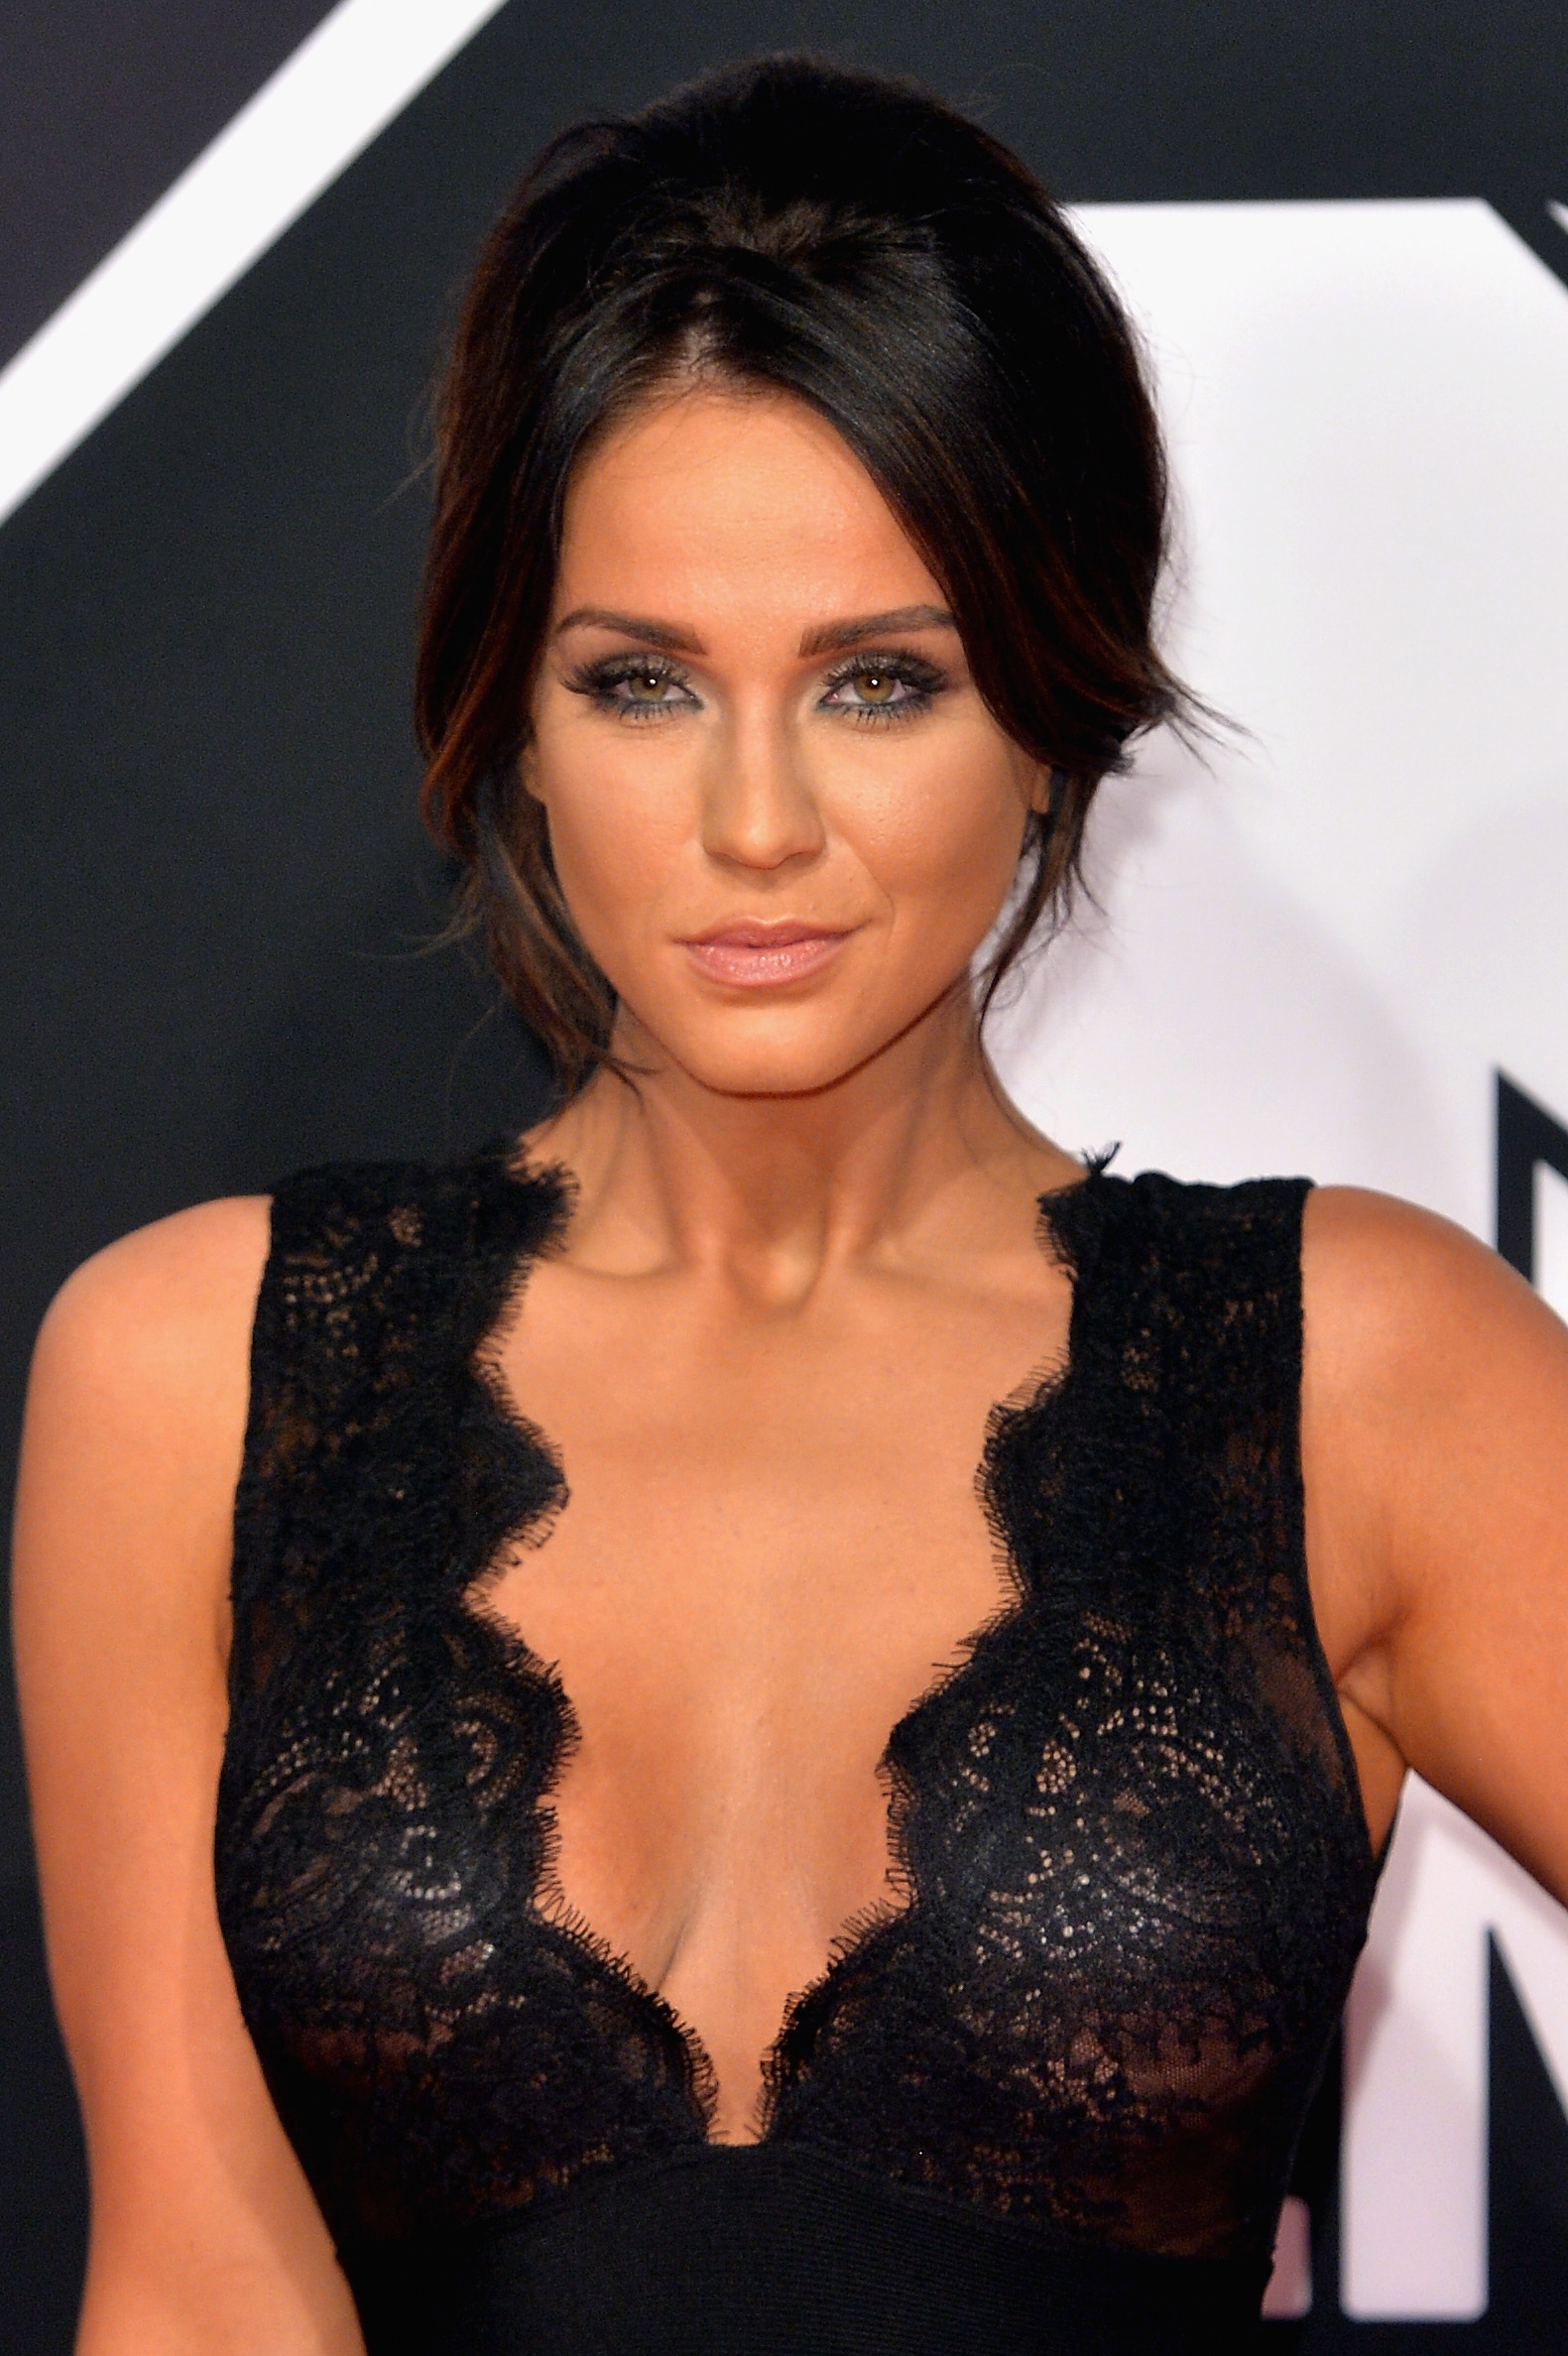 Vicky Pattison at The Tric Awards 2016 - Arrivals